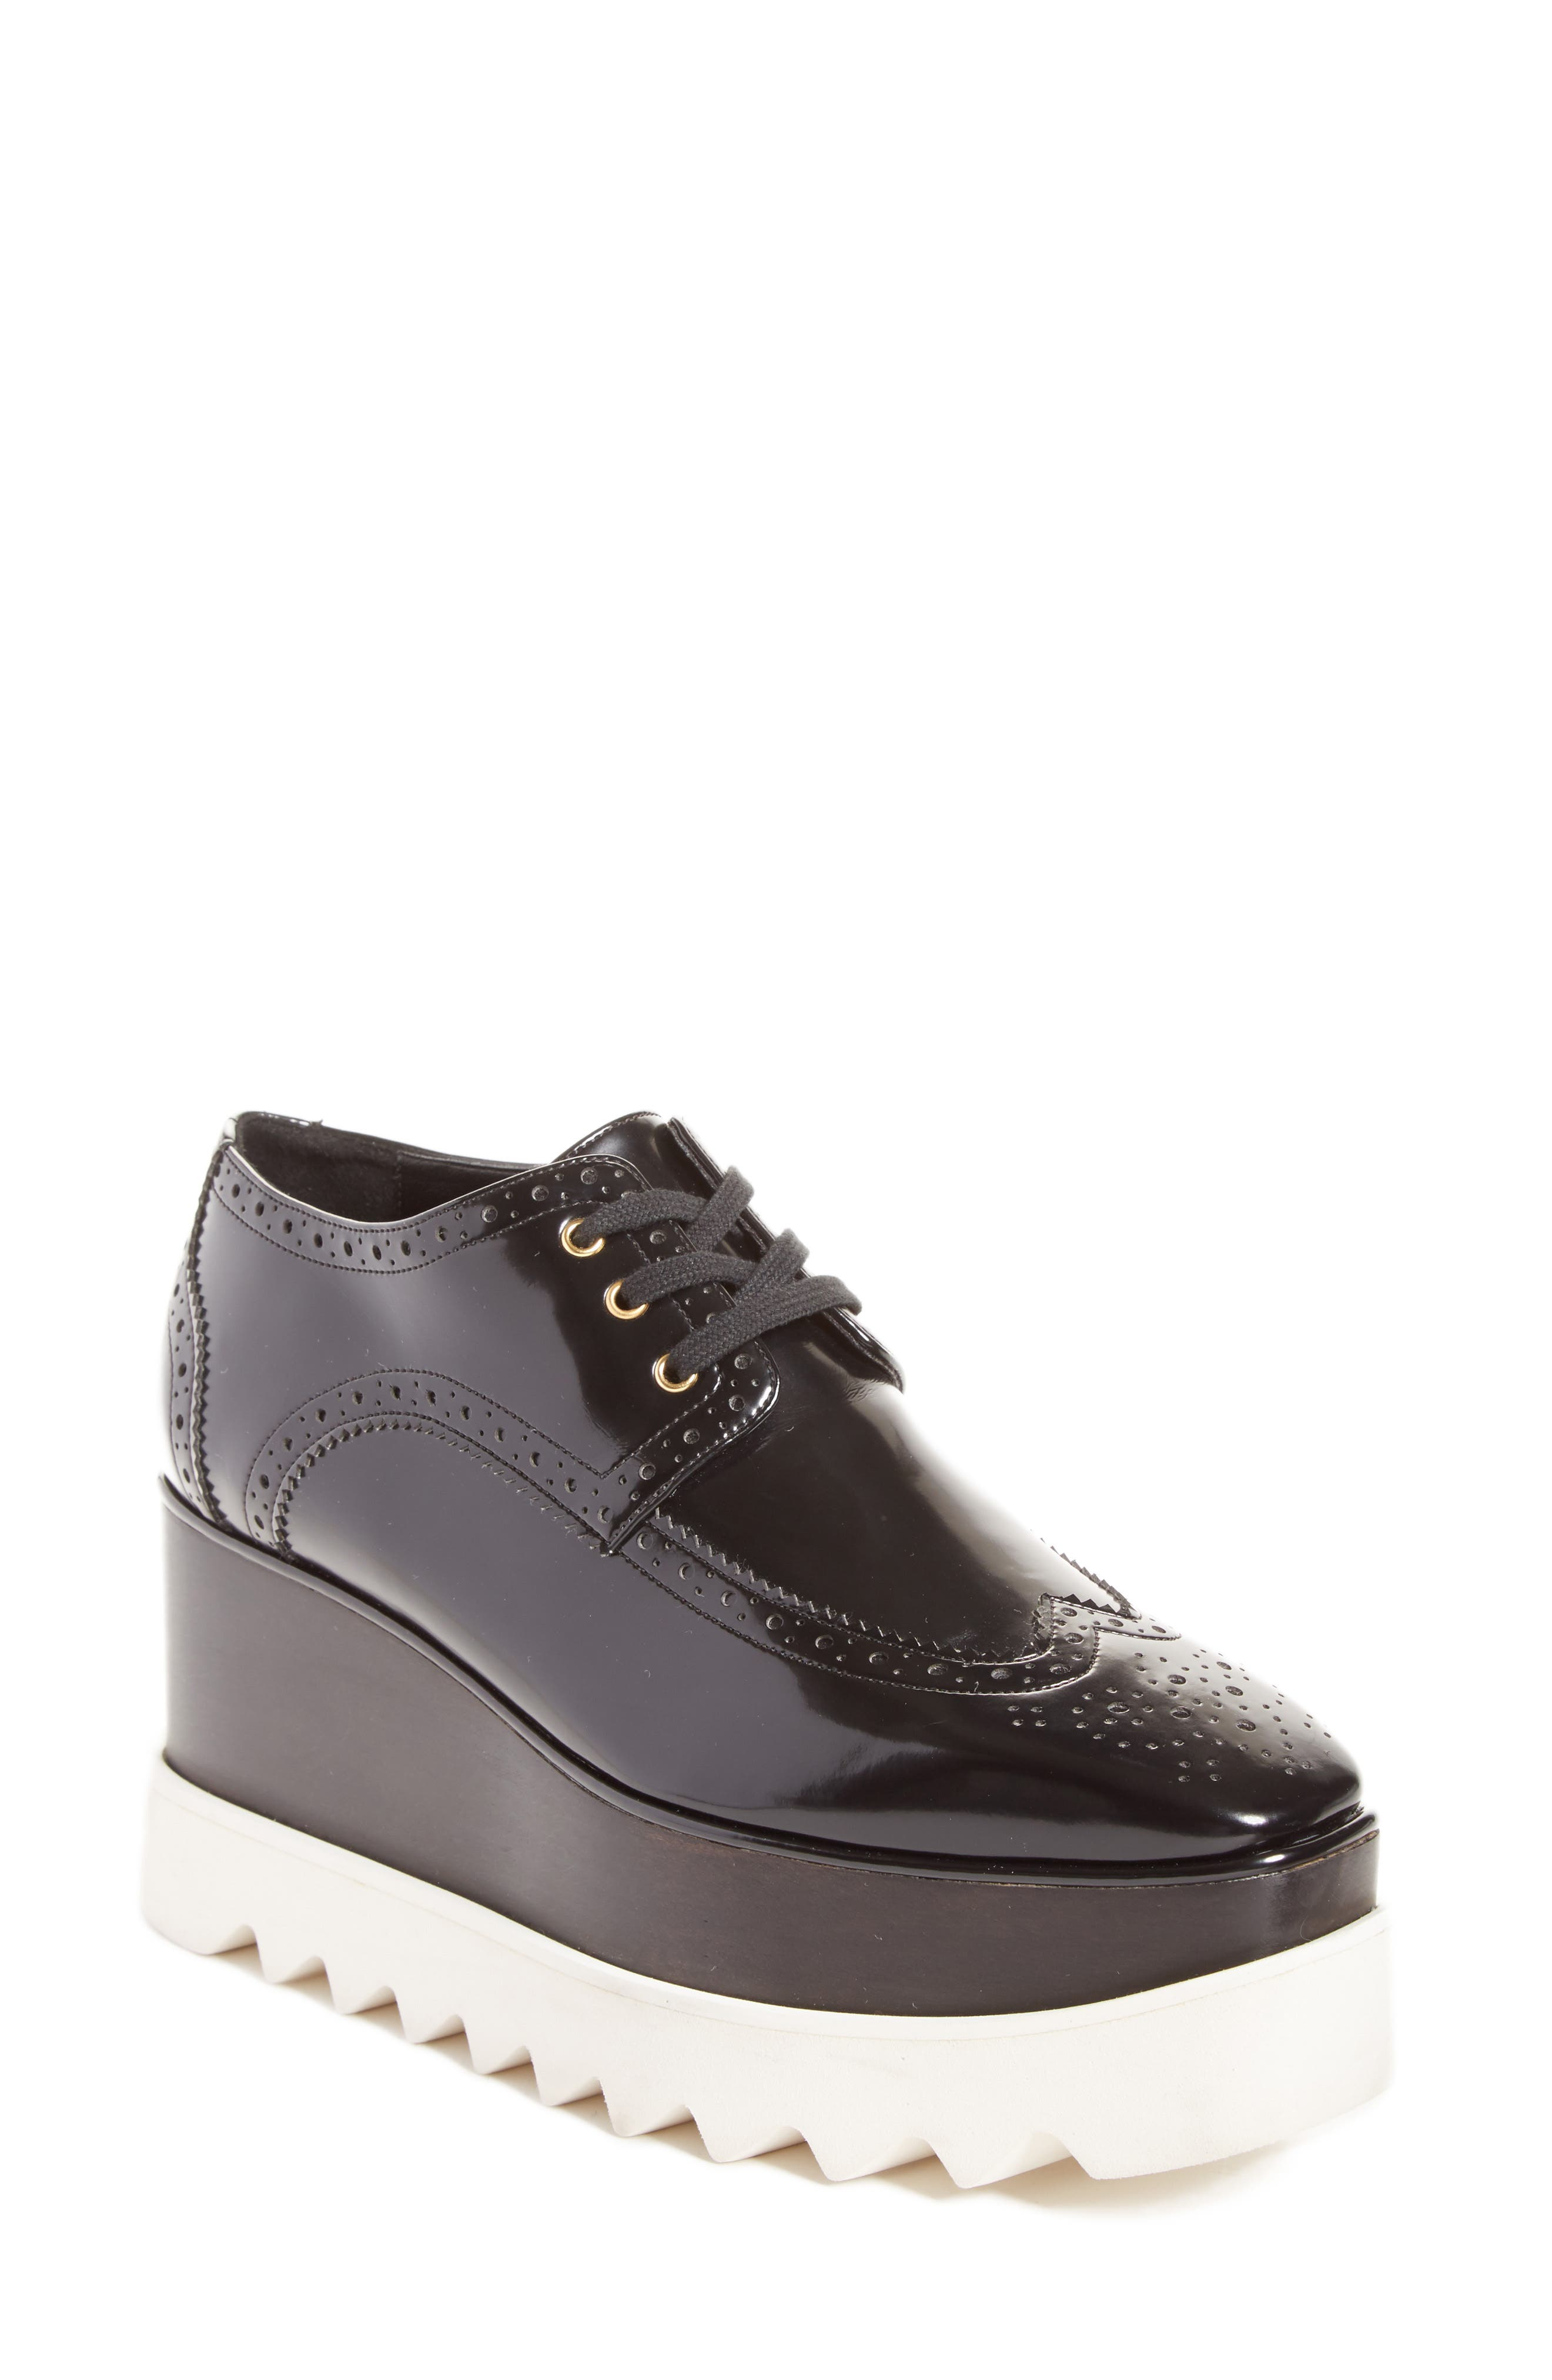 Stella McCartney Elyse Brogue Platform Loafer (Women)